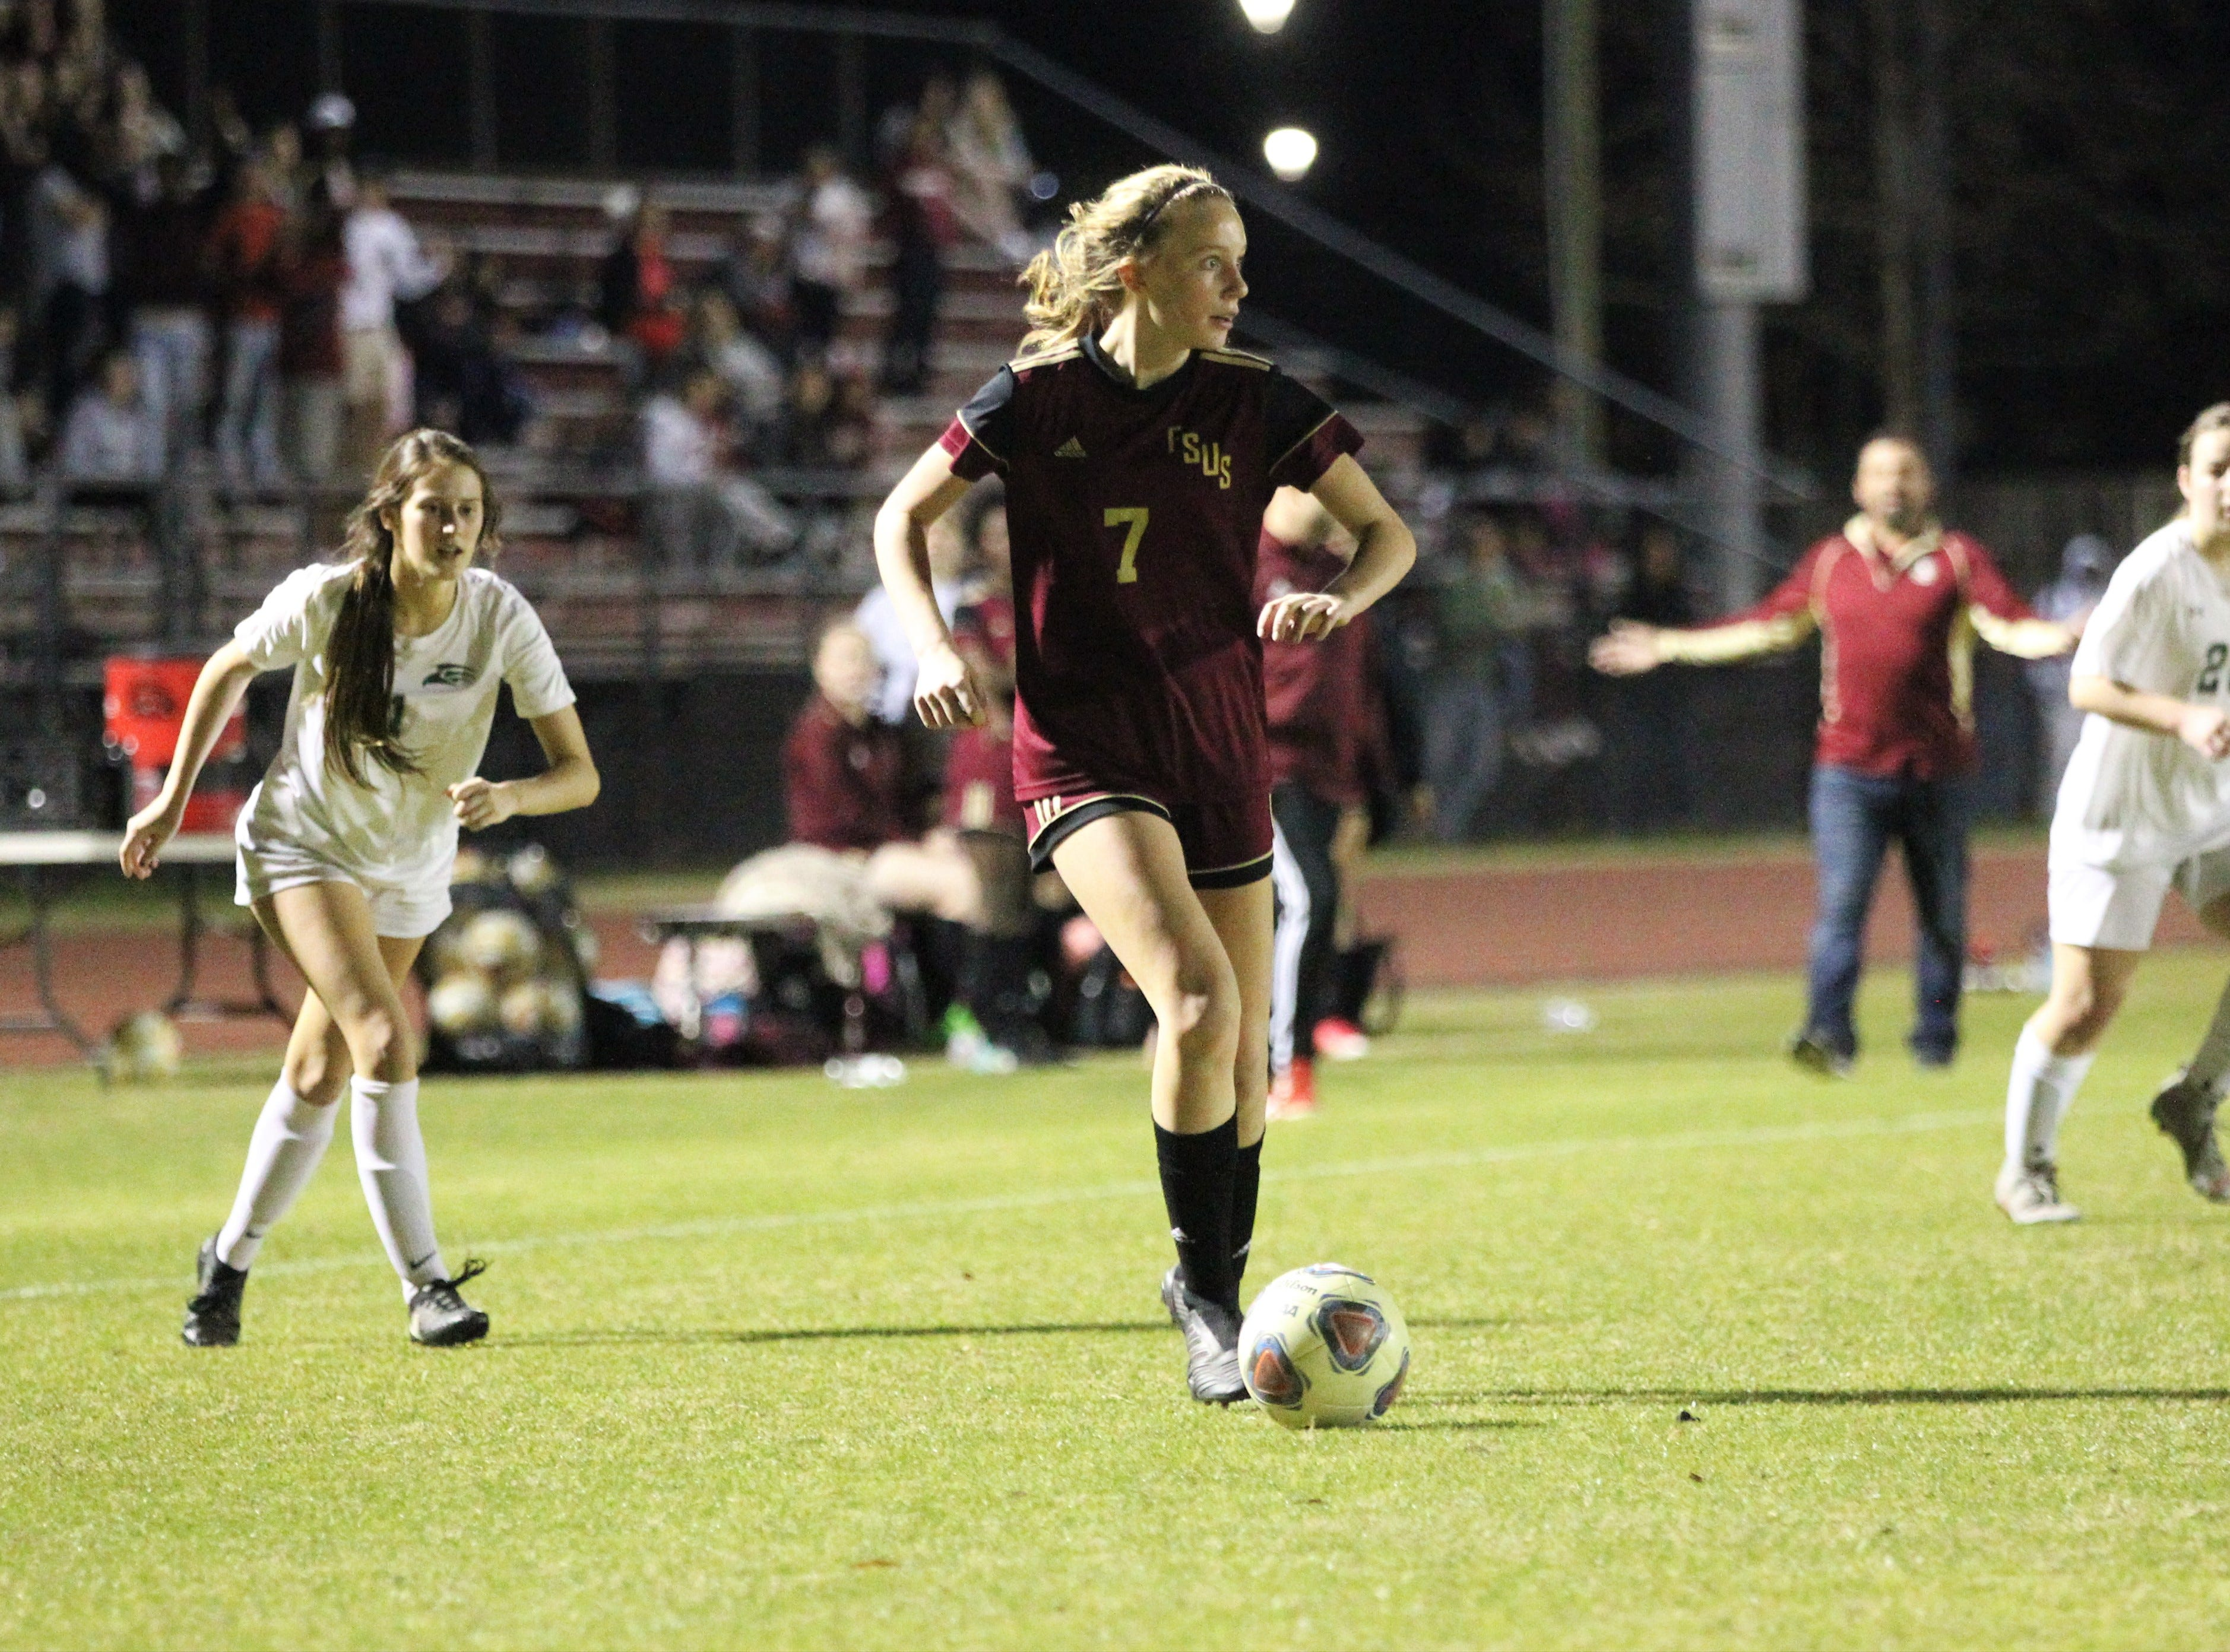 Florida High's Ava Dubois looks for a pass as South Walton's girls soccer team edged the Seminoles 5-4 in a penalty-kick shootout during a Region 1-2A semifinal on Feb. 8, 2019.